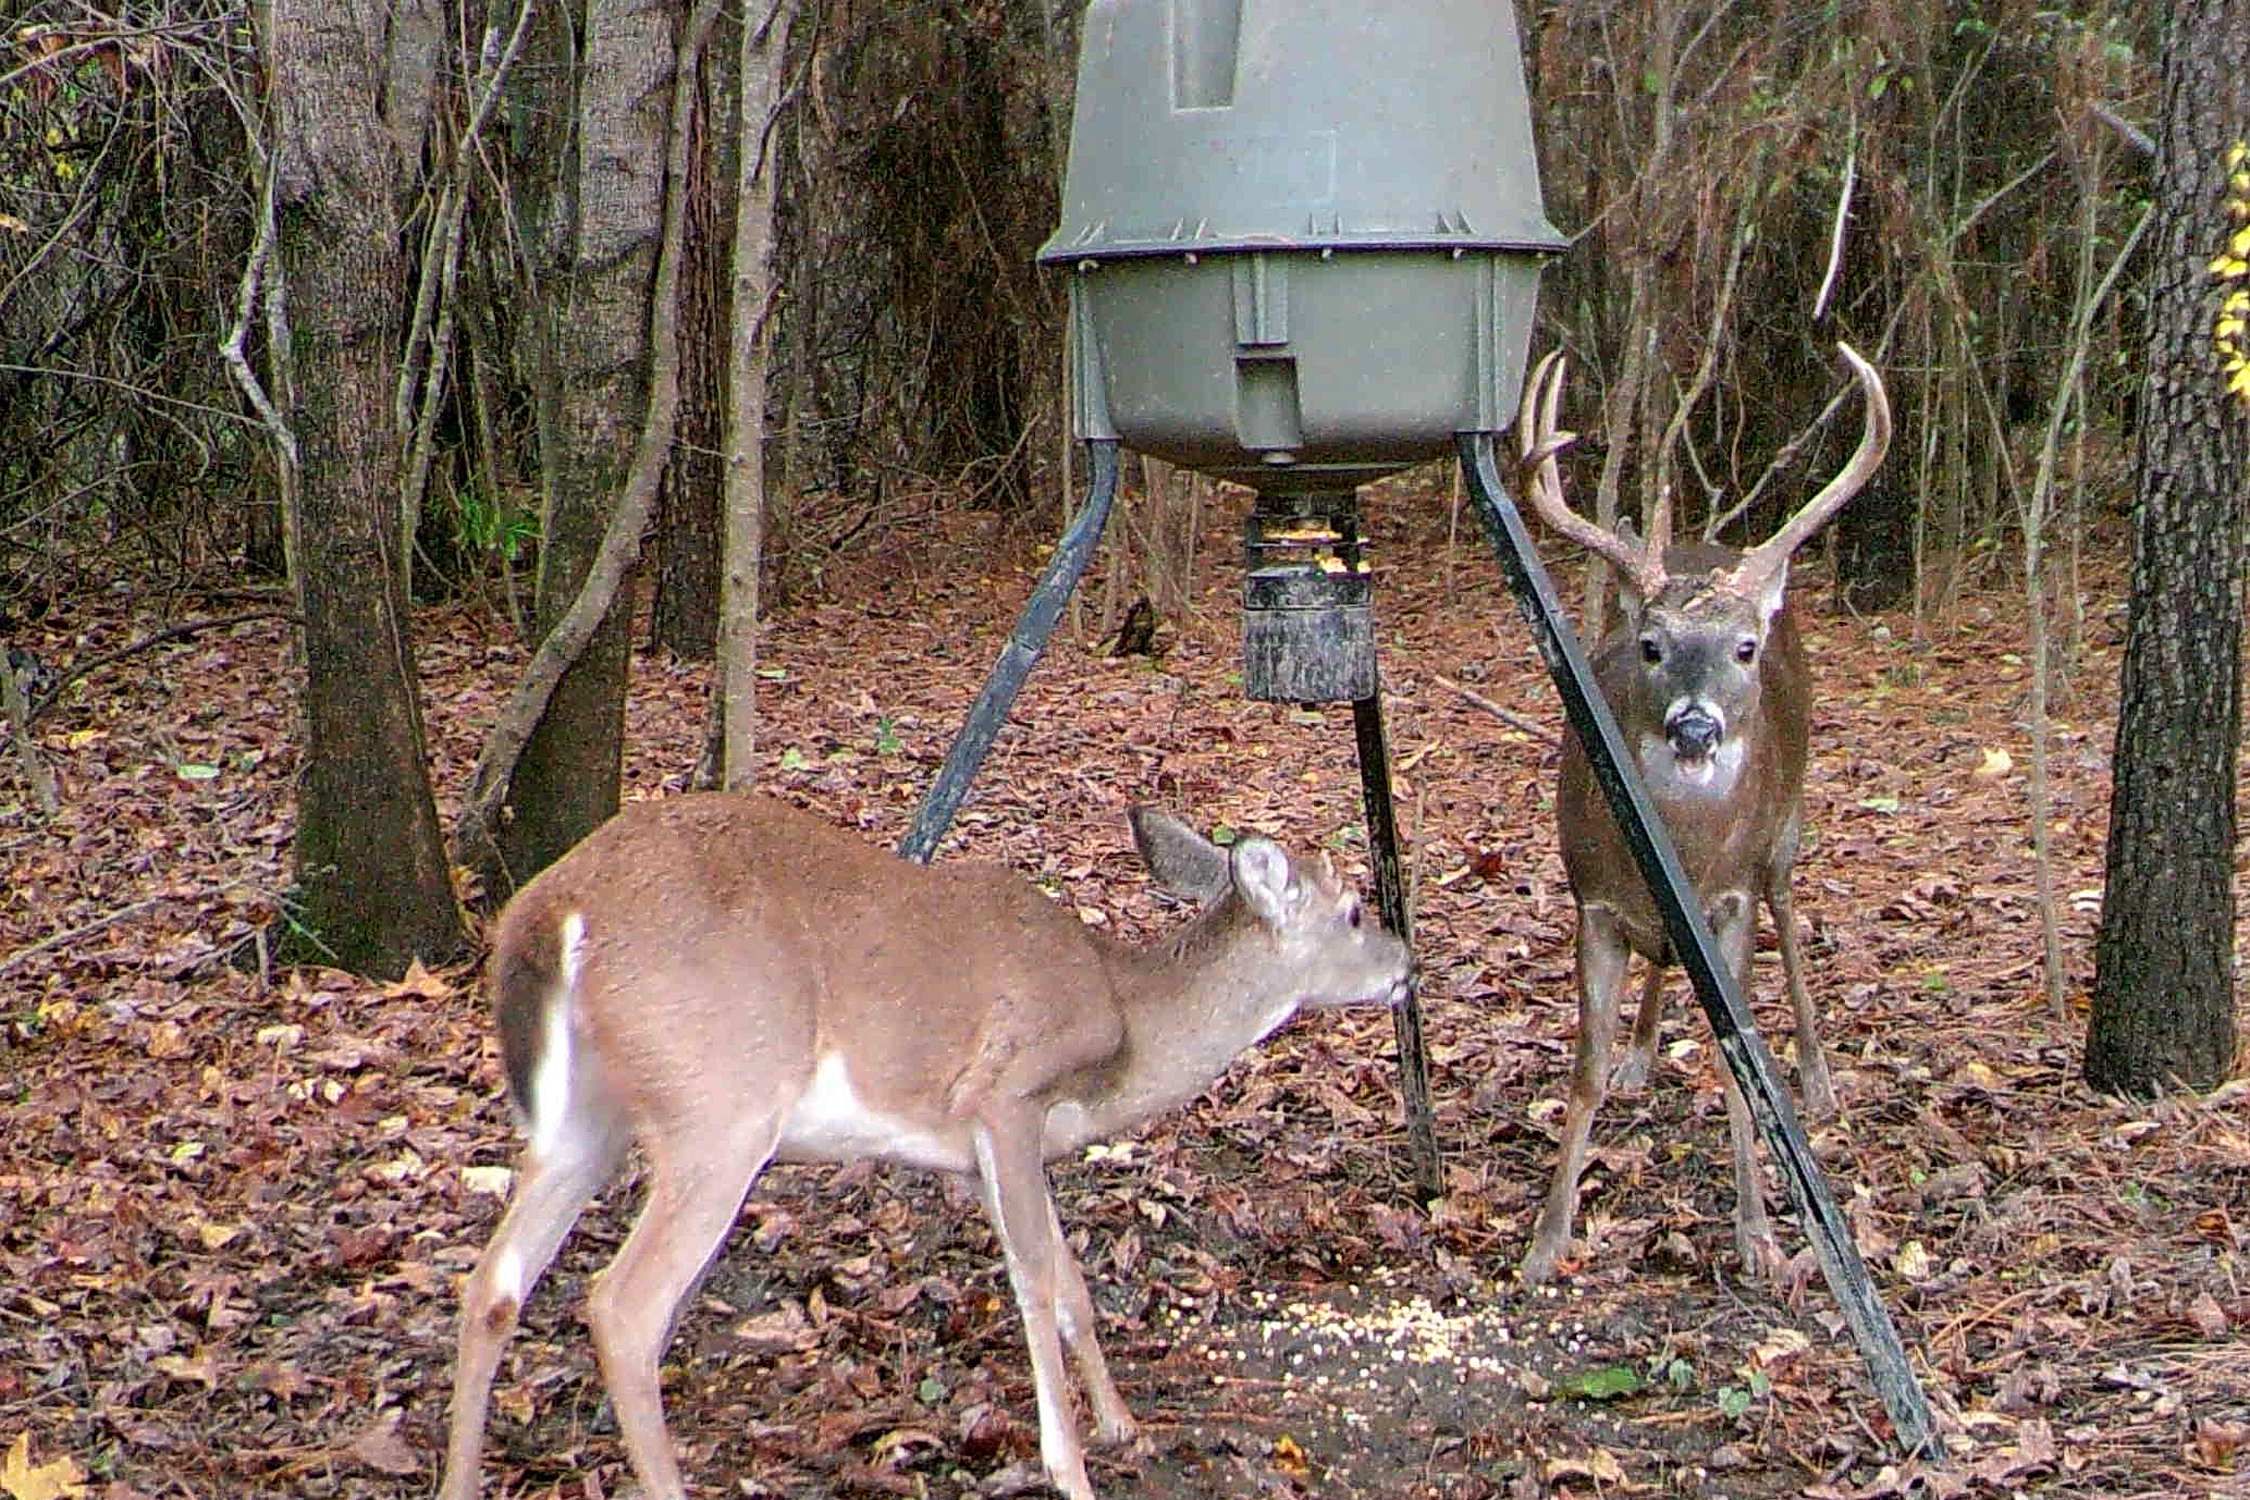 New for Alabama deer season: Baiting on private land